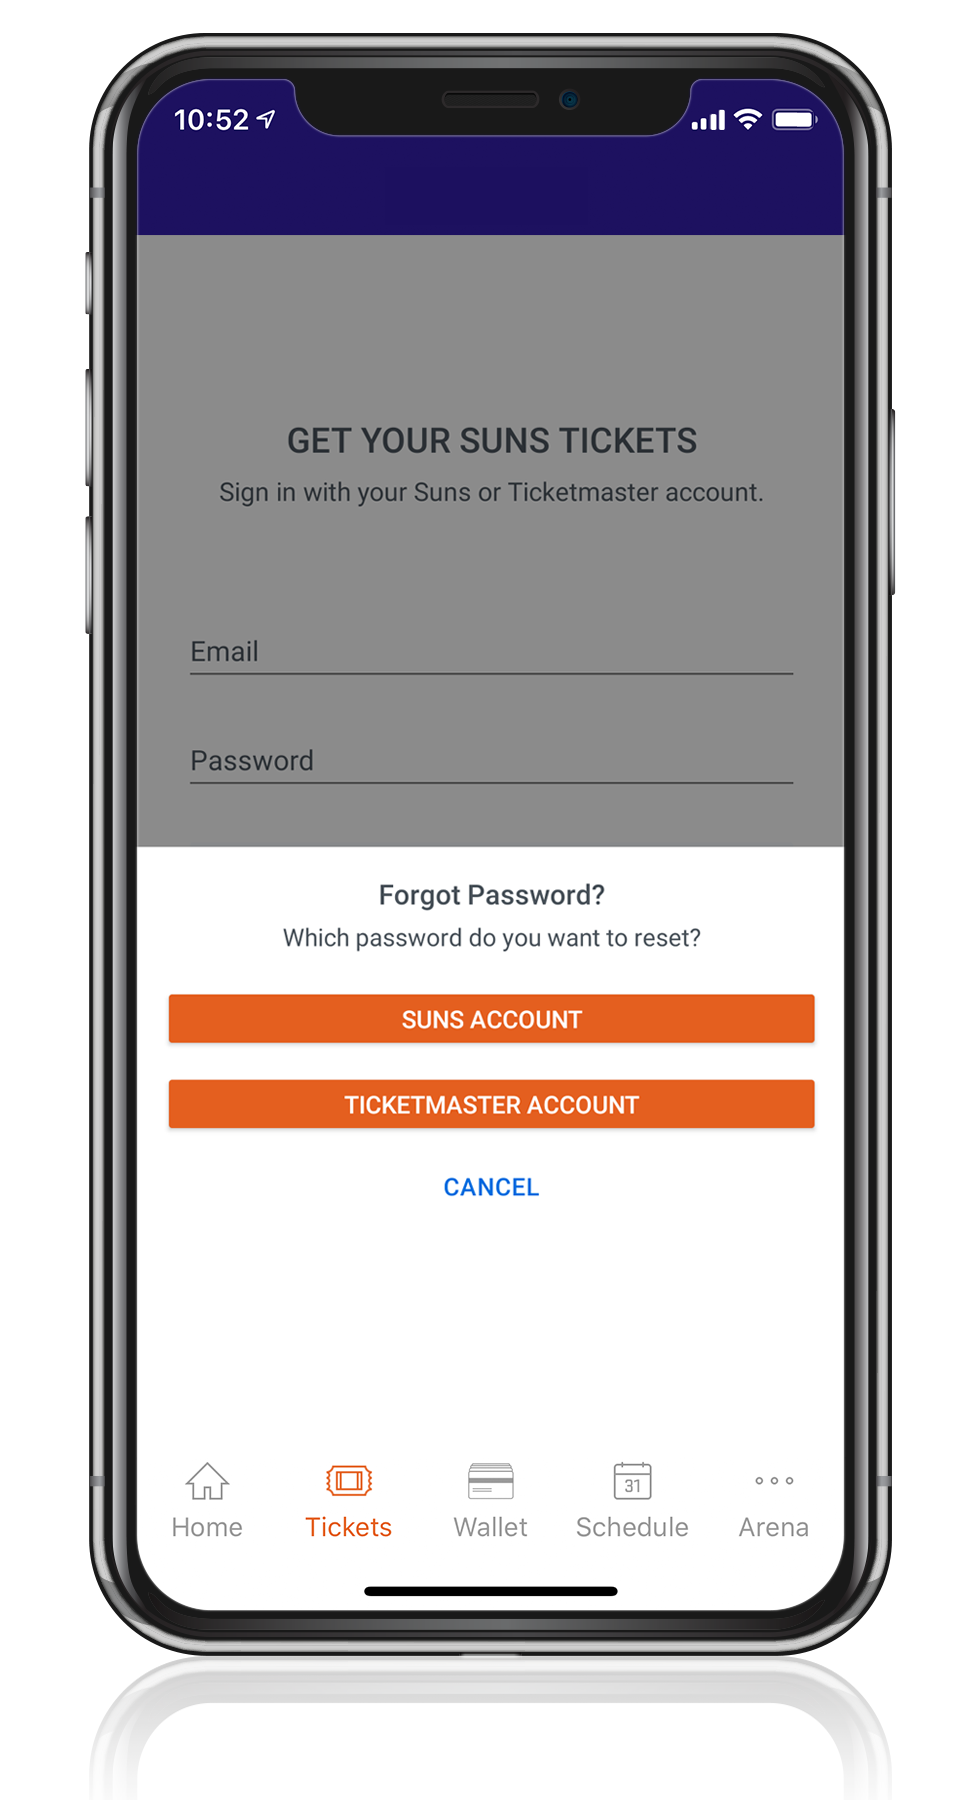 Access Your Tickets - Step Three